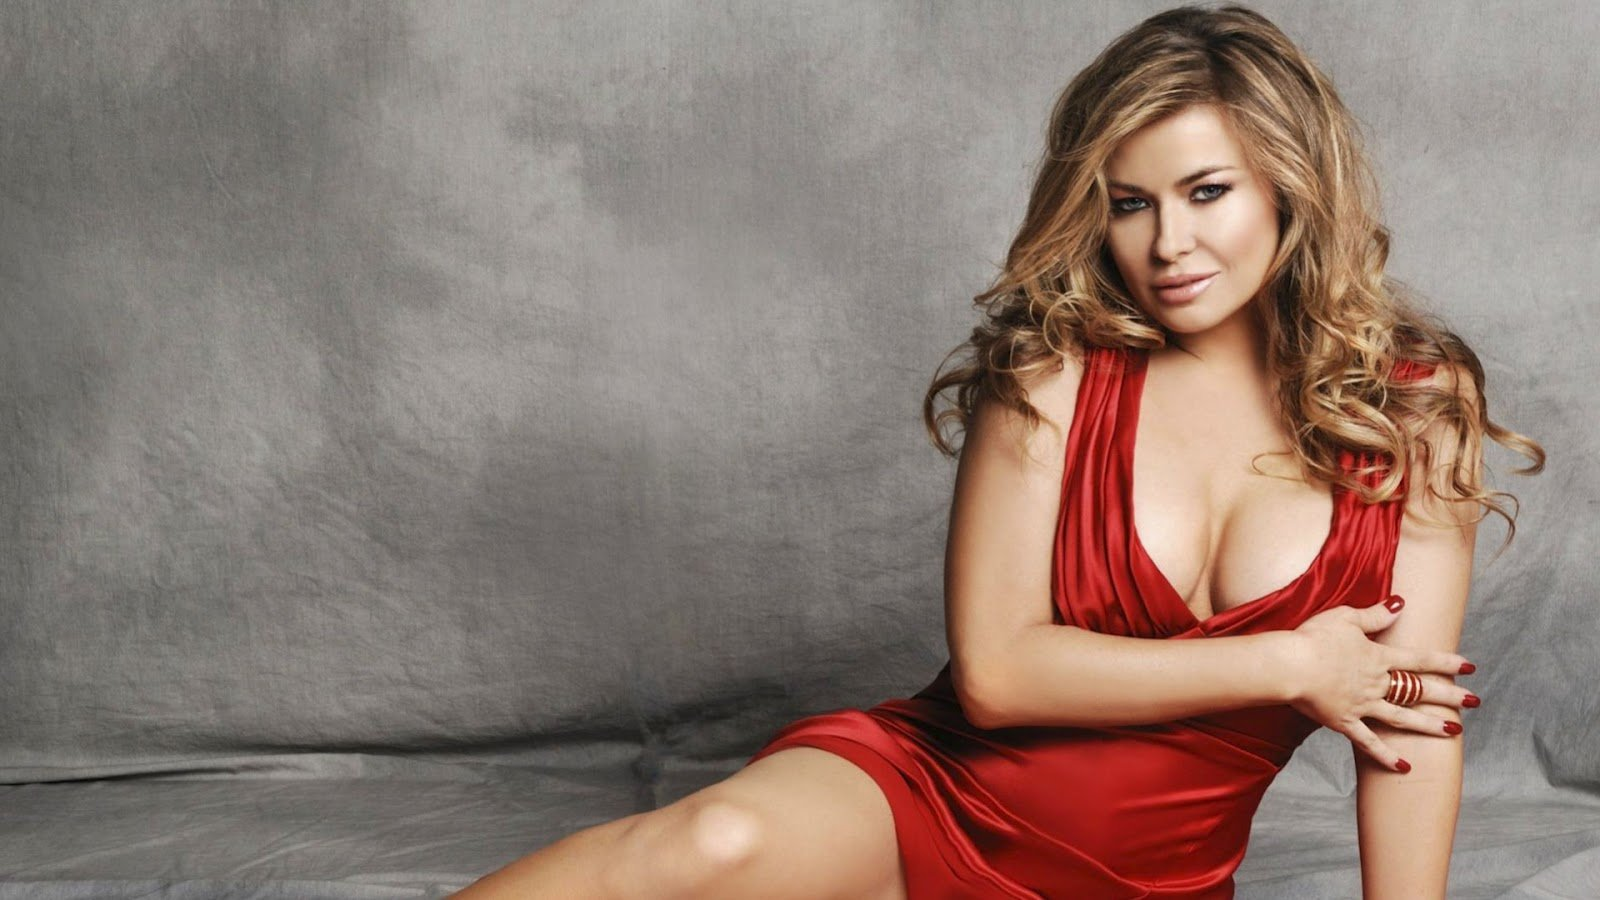 Celebrities and Hottest Women: Sexiest Photos & Videos